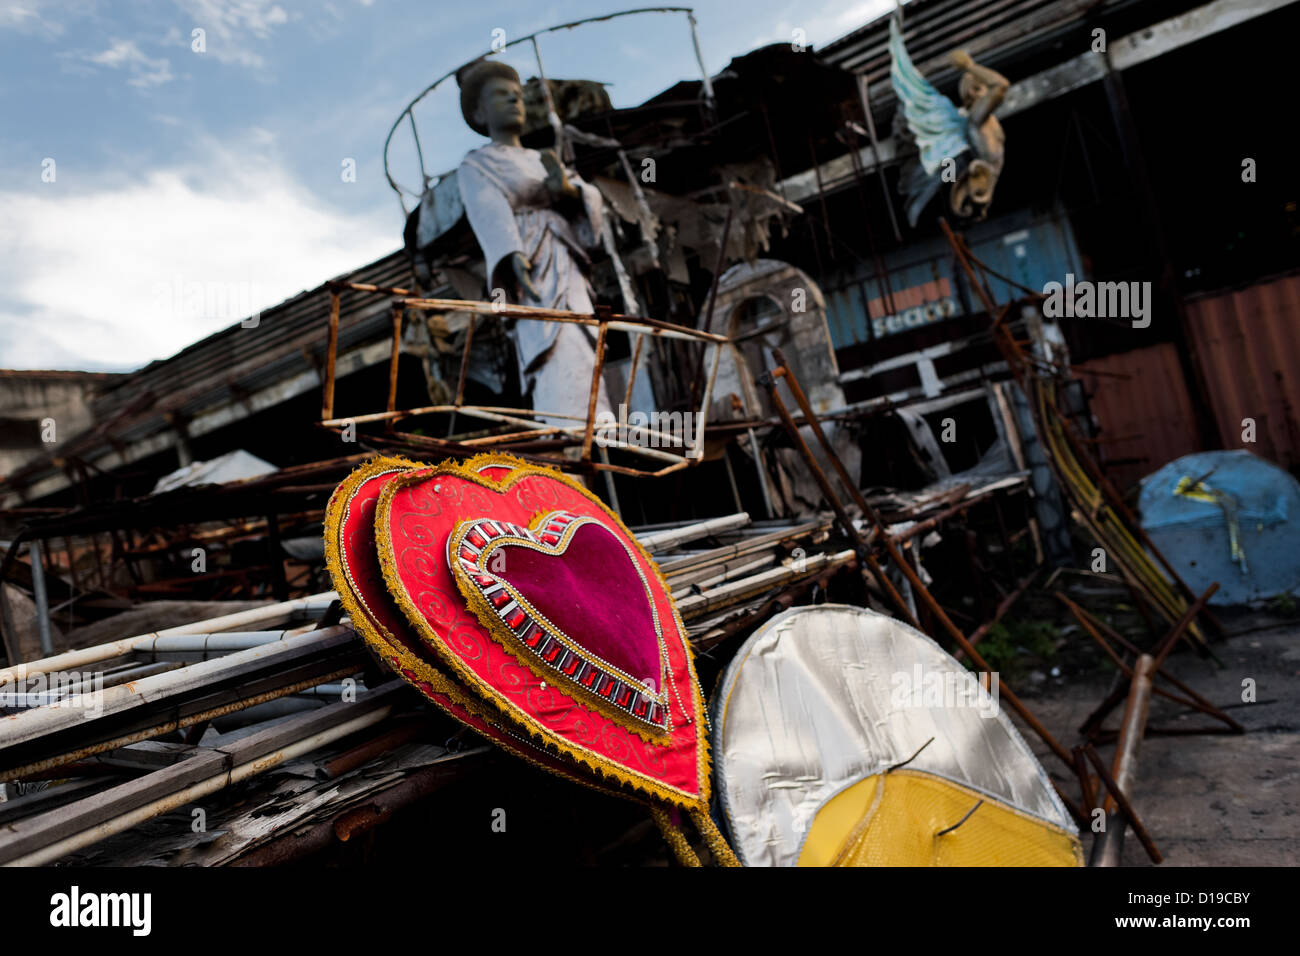 A dismantled carnival float abandoned on the work yard behind the Samba school workshops in Rio de Janeiro, Brazil. - Stock Image